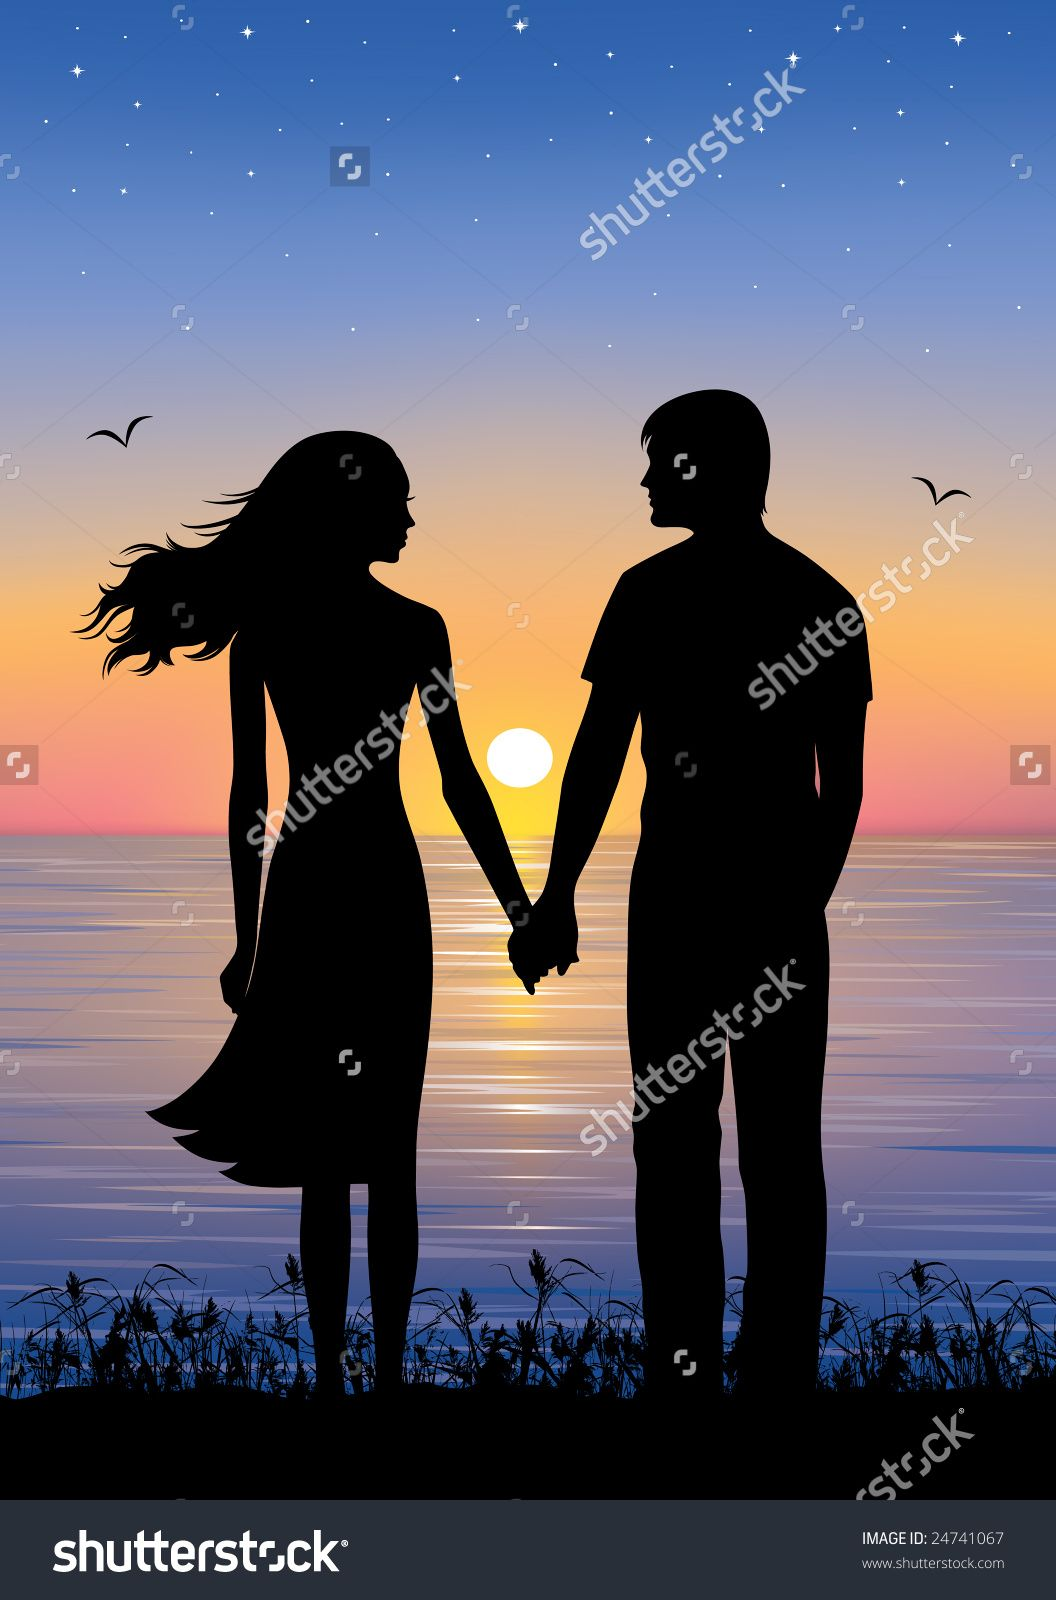 couples hugging - Google Search | Cora and Echo (Runes ... for Couple Holding Hands Silhouette Sunset  584dqh